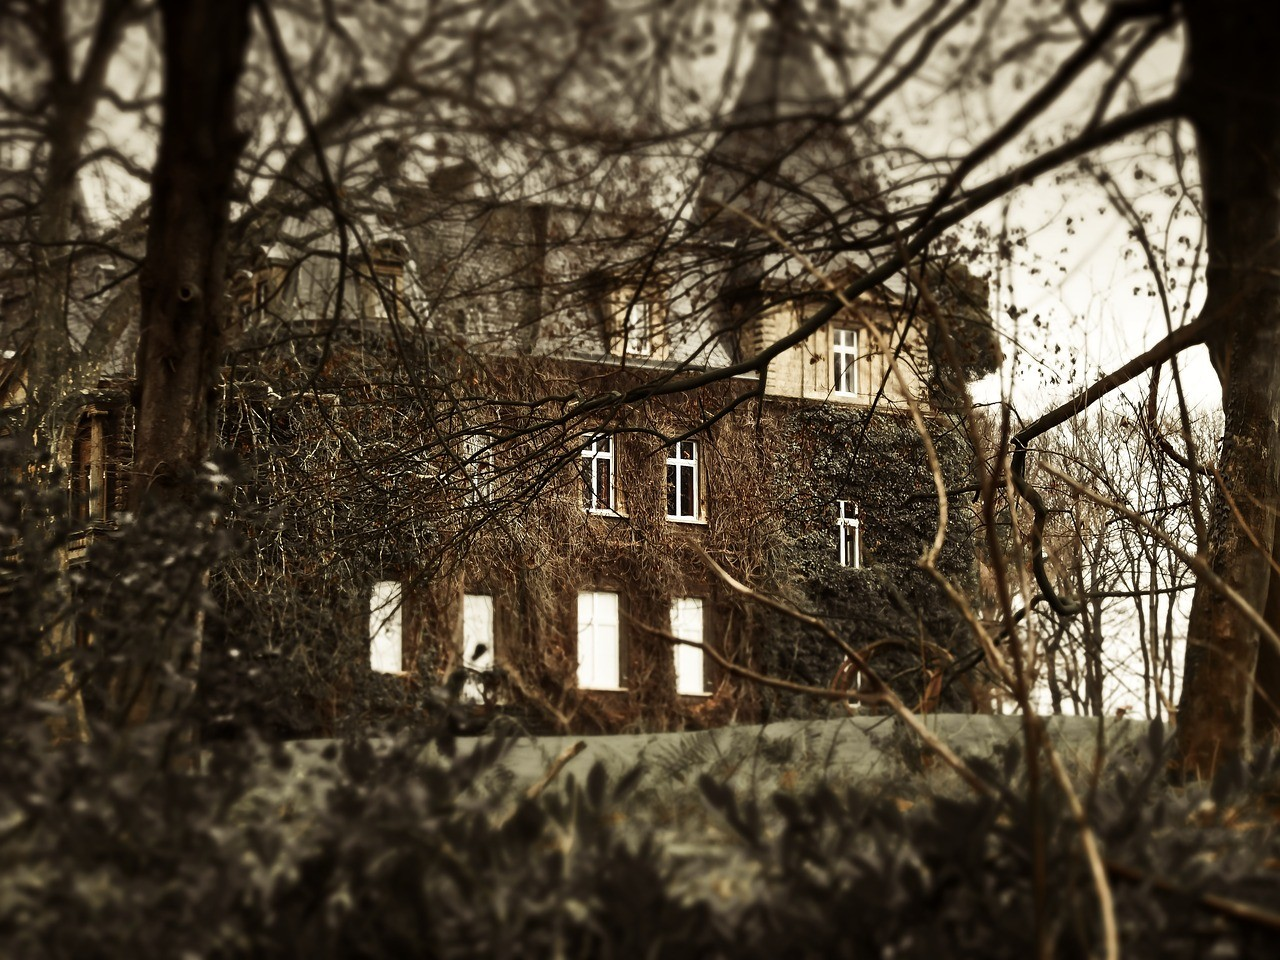 haunted-house-1124241_1280